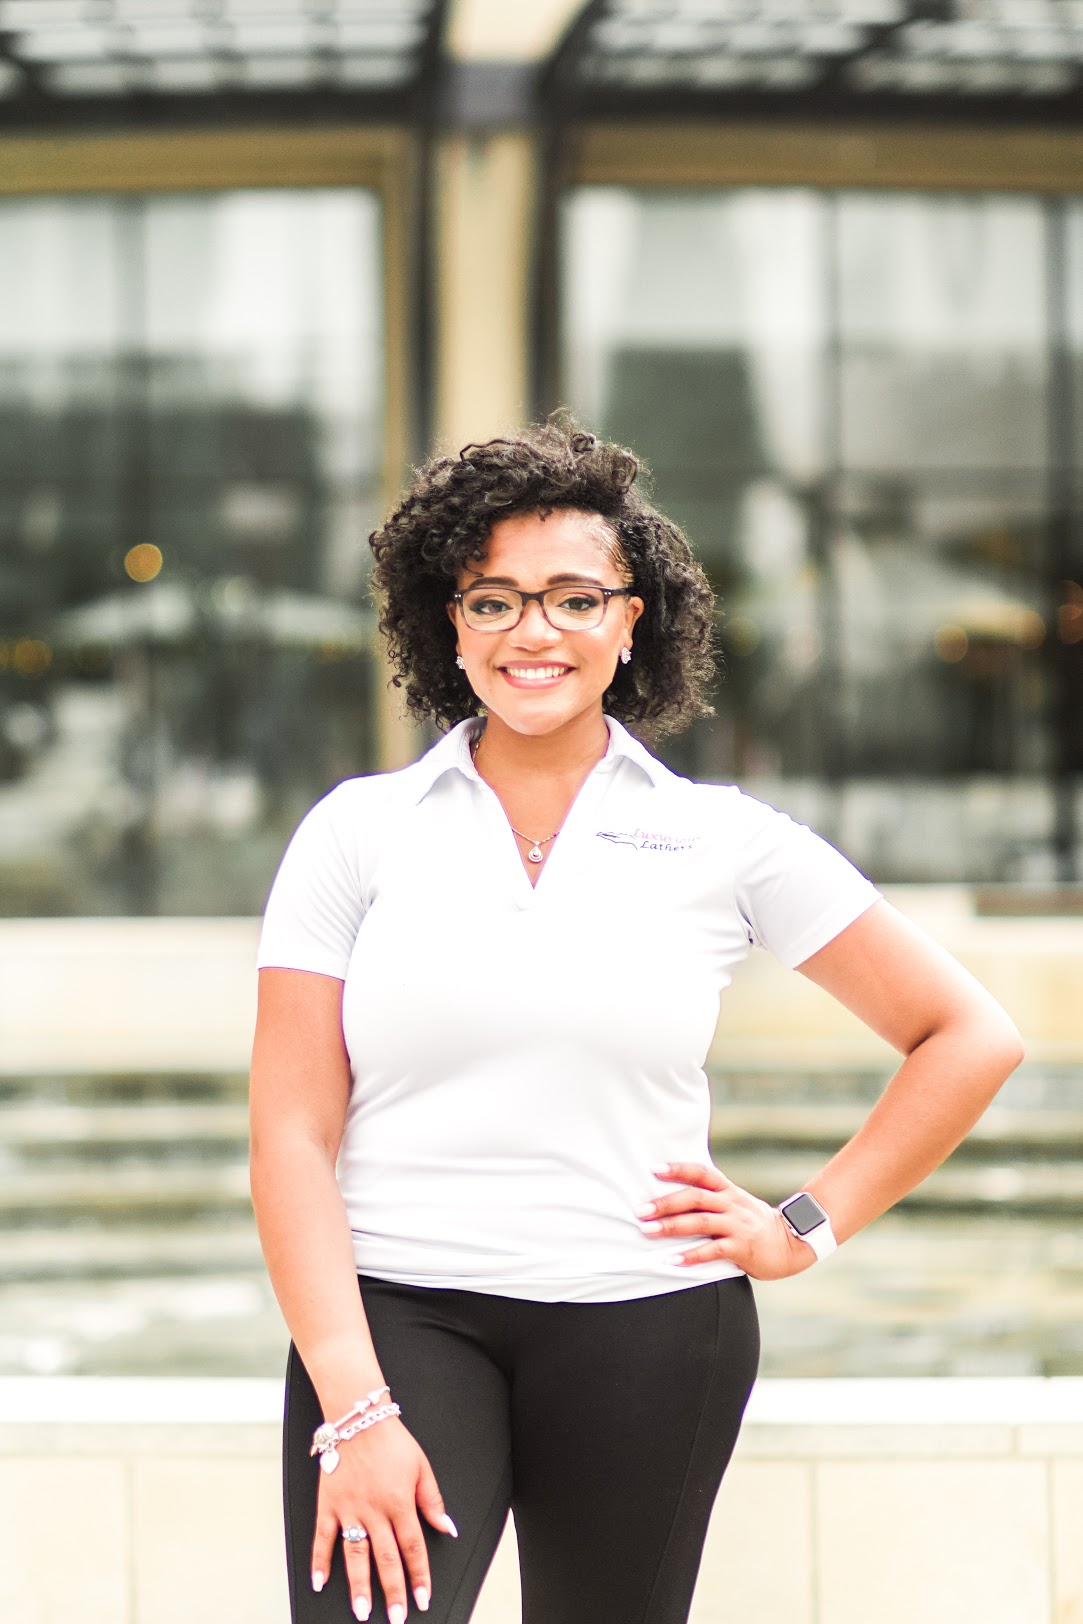 Genesis Smith, CEO of Luxurious Lathers